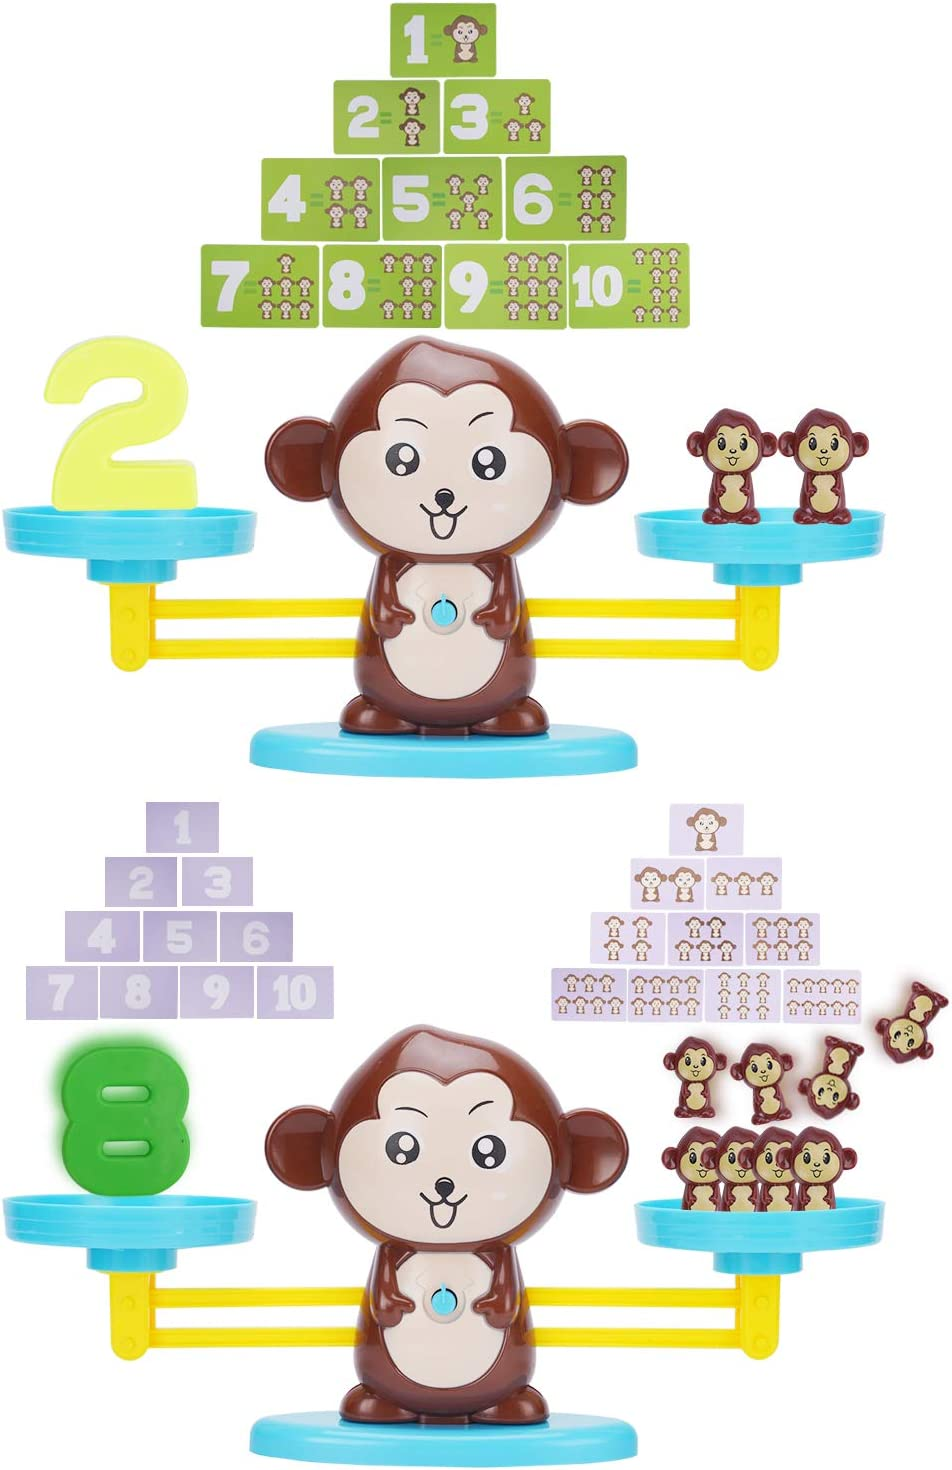 Monkey Balance Cool Math Game for Girls /& Boys Stem Toys for 3 4 5 Year Olds Children/'s Gift /& Kids Toy Preschool Kindergarten Counting Educational Games